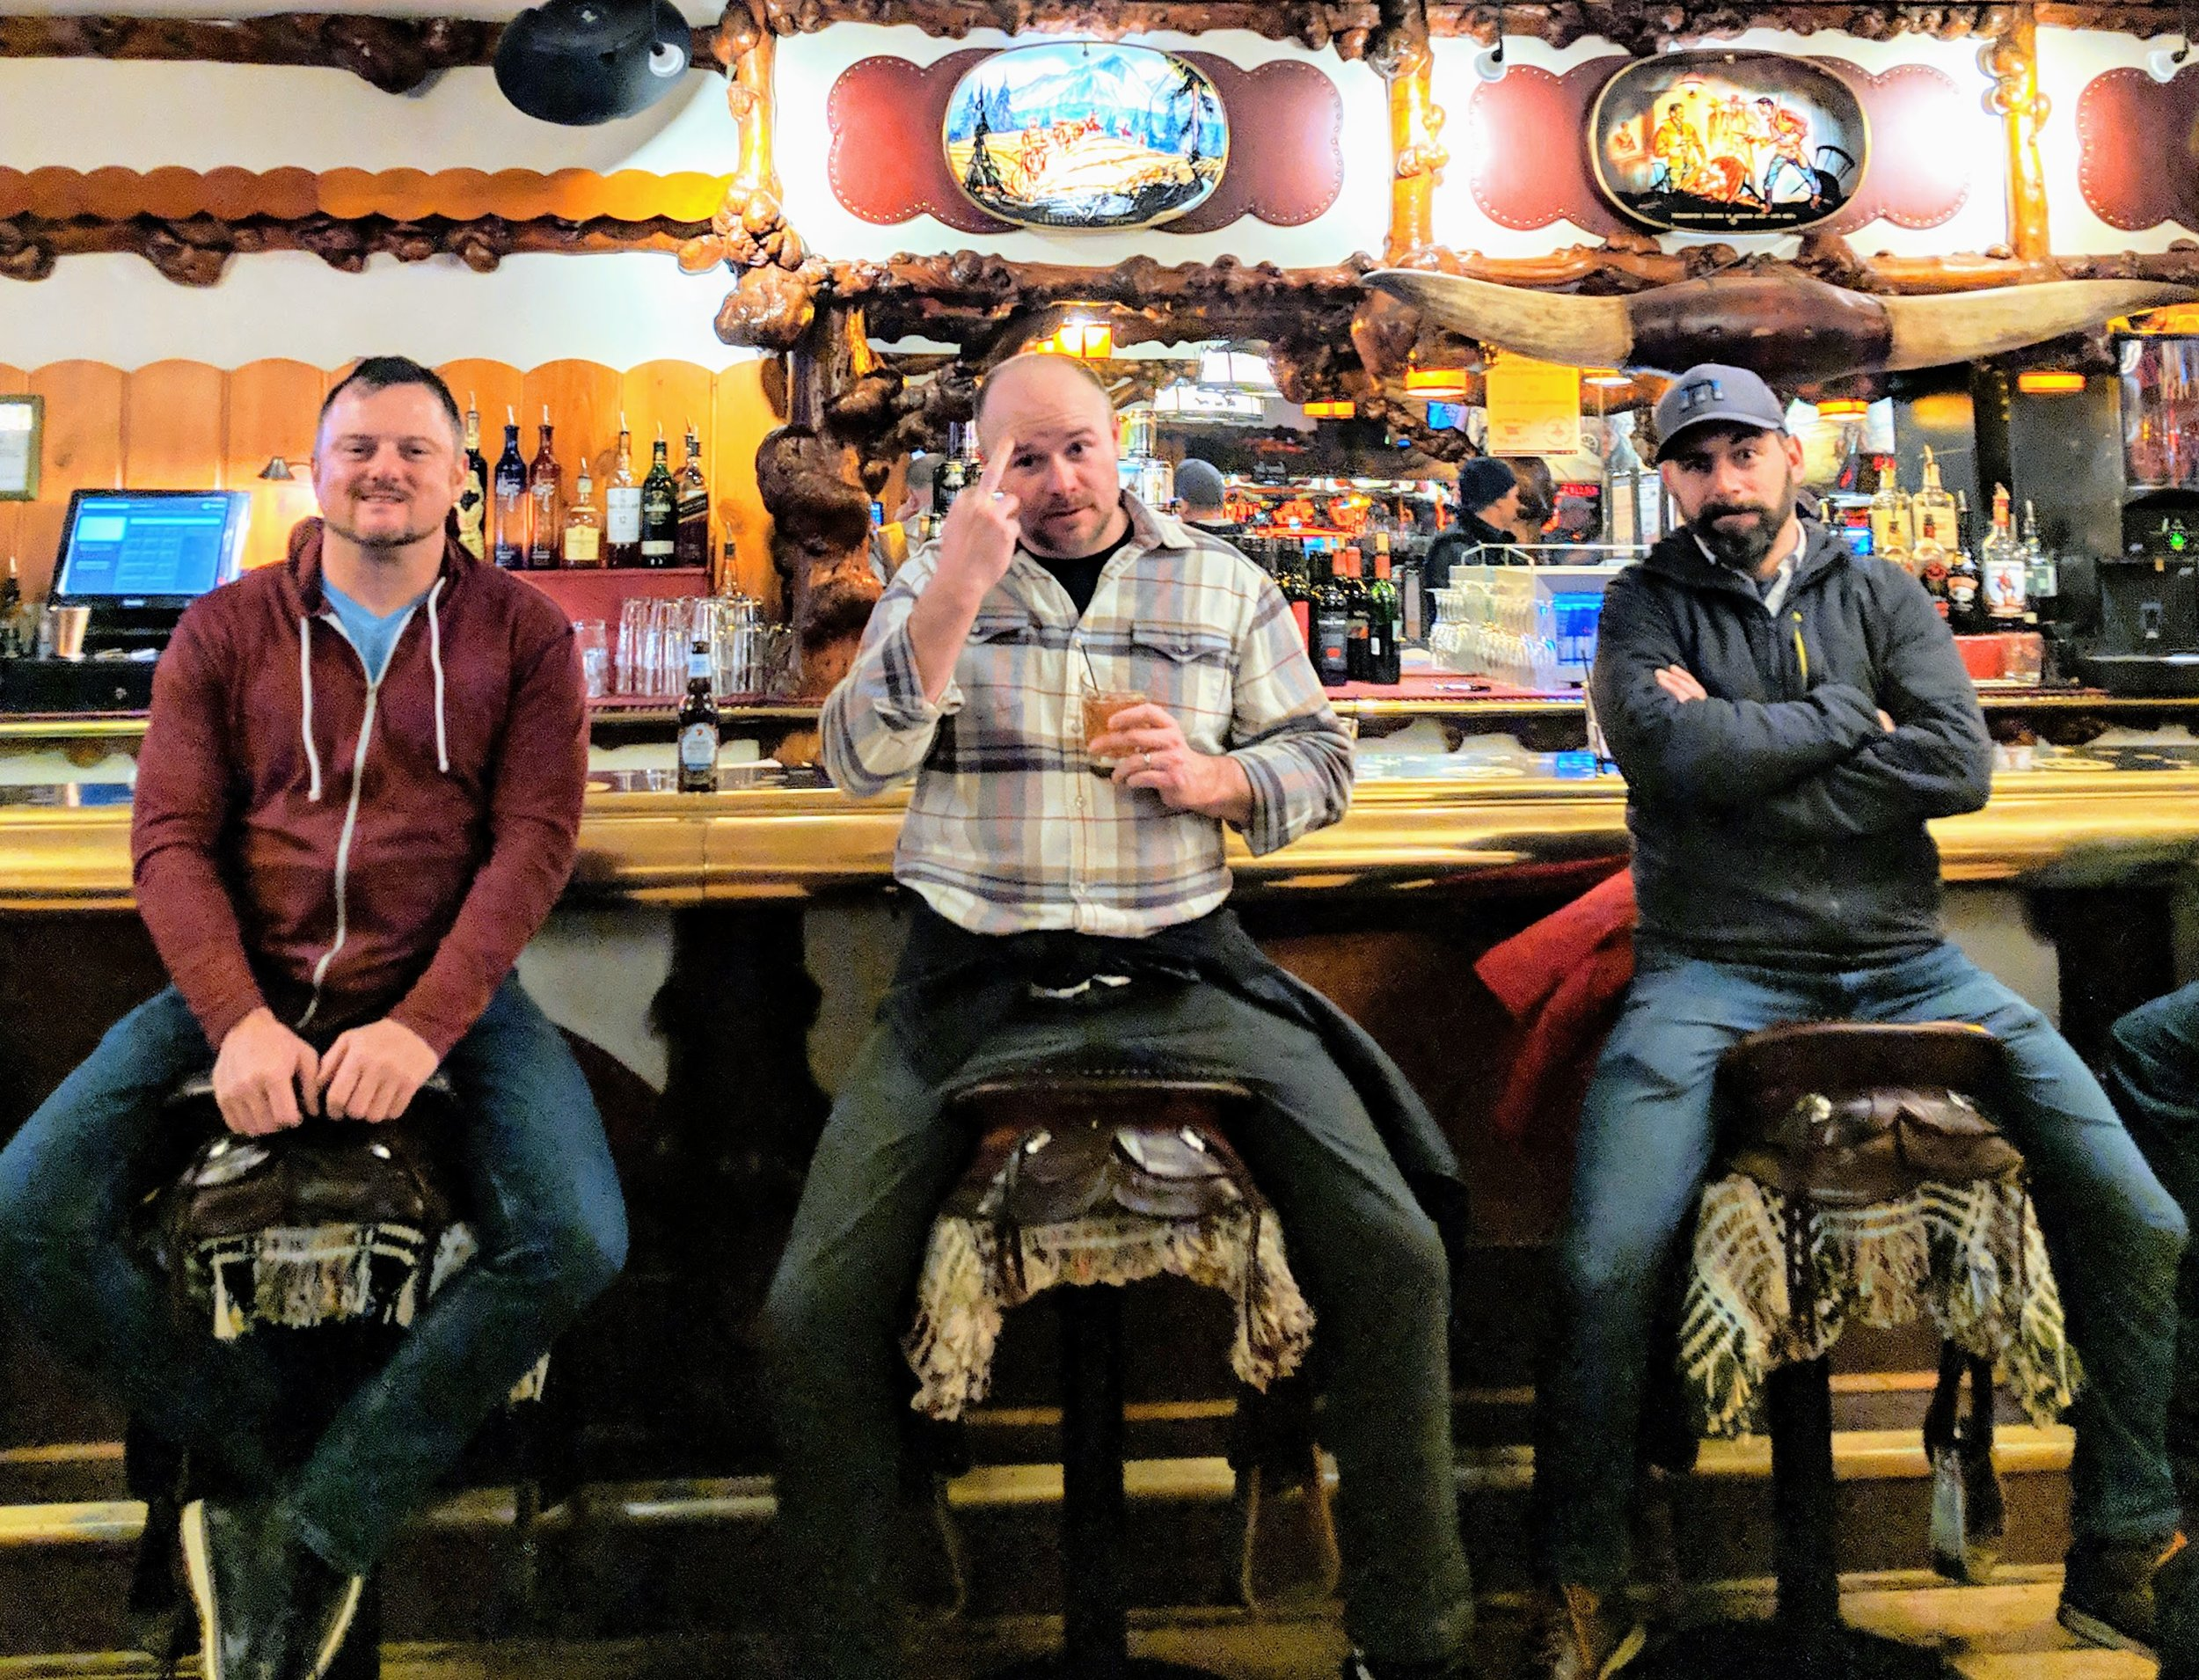 At the Million Dollar Cowboy Bar in Jackson, WY with Mike and Dean | Jan 2019